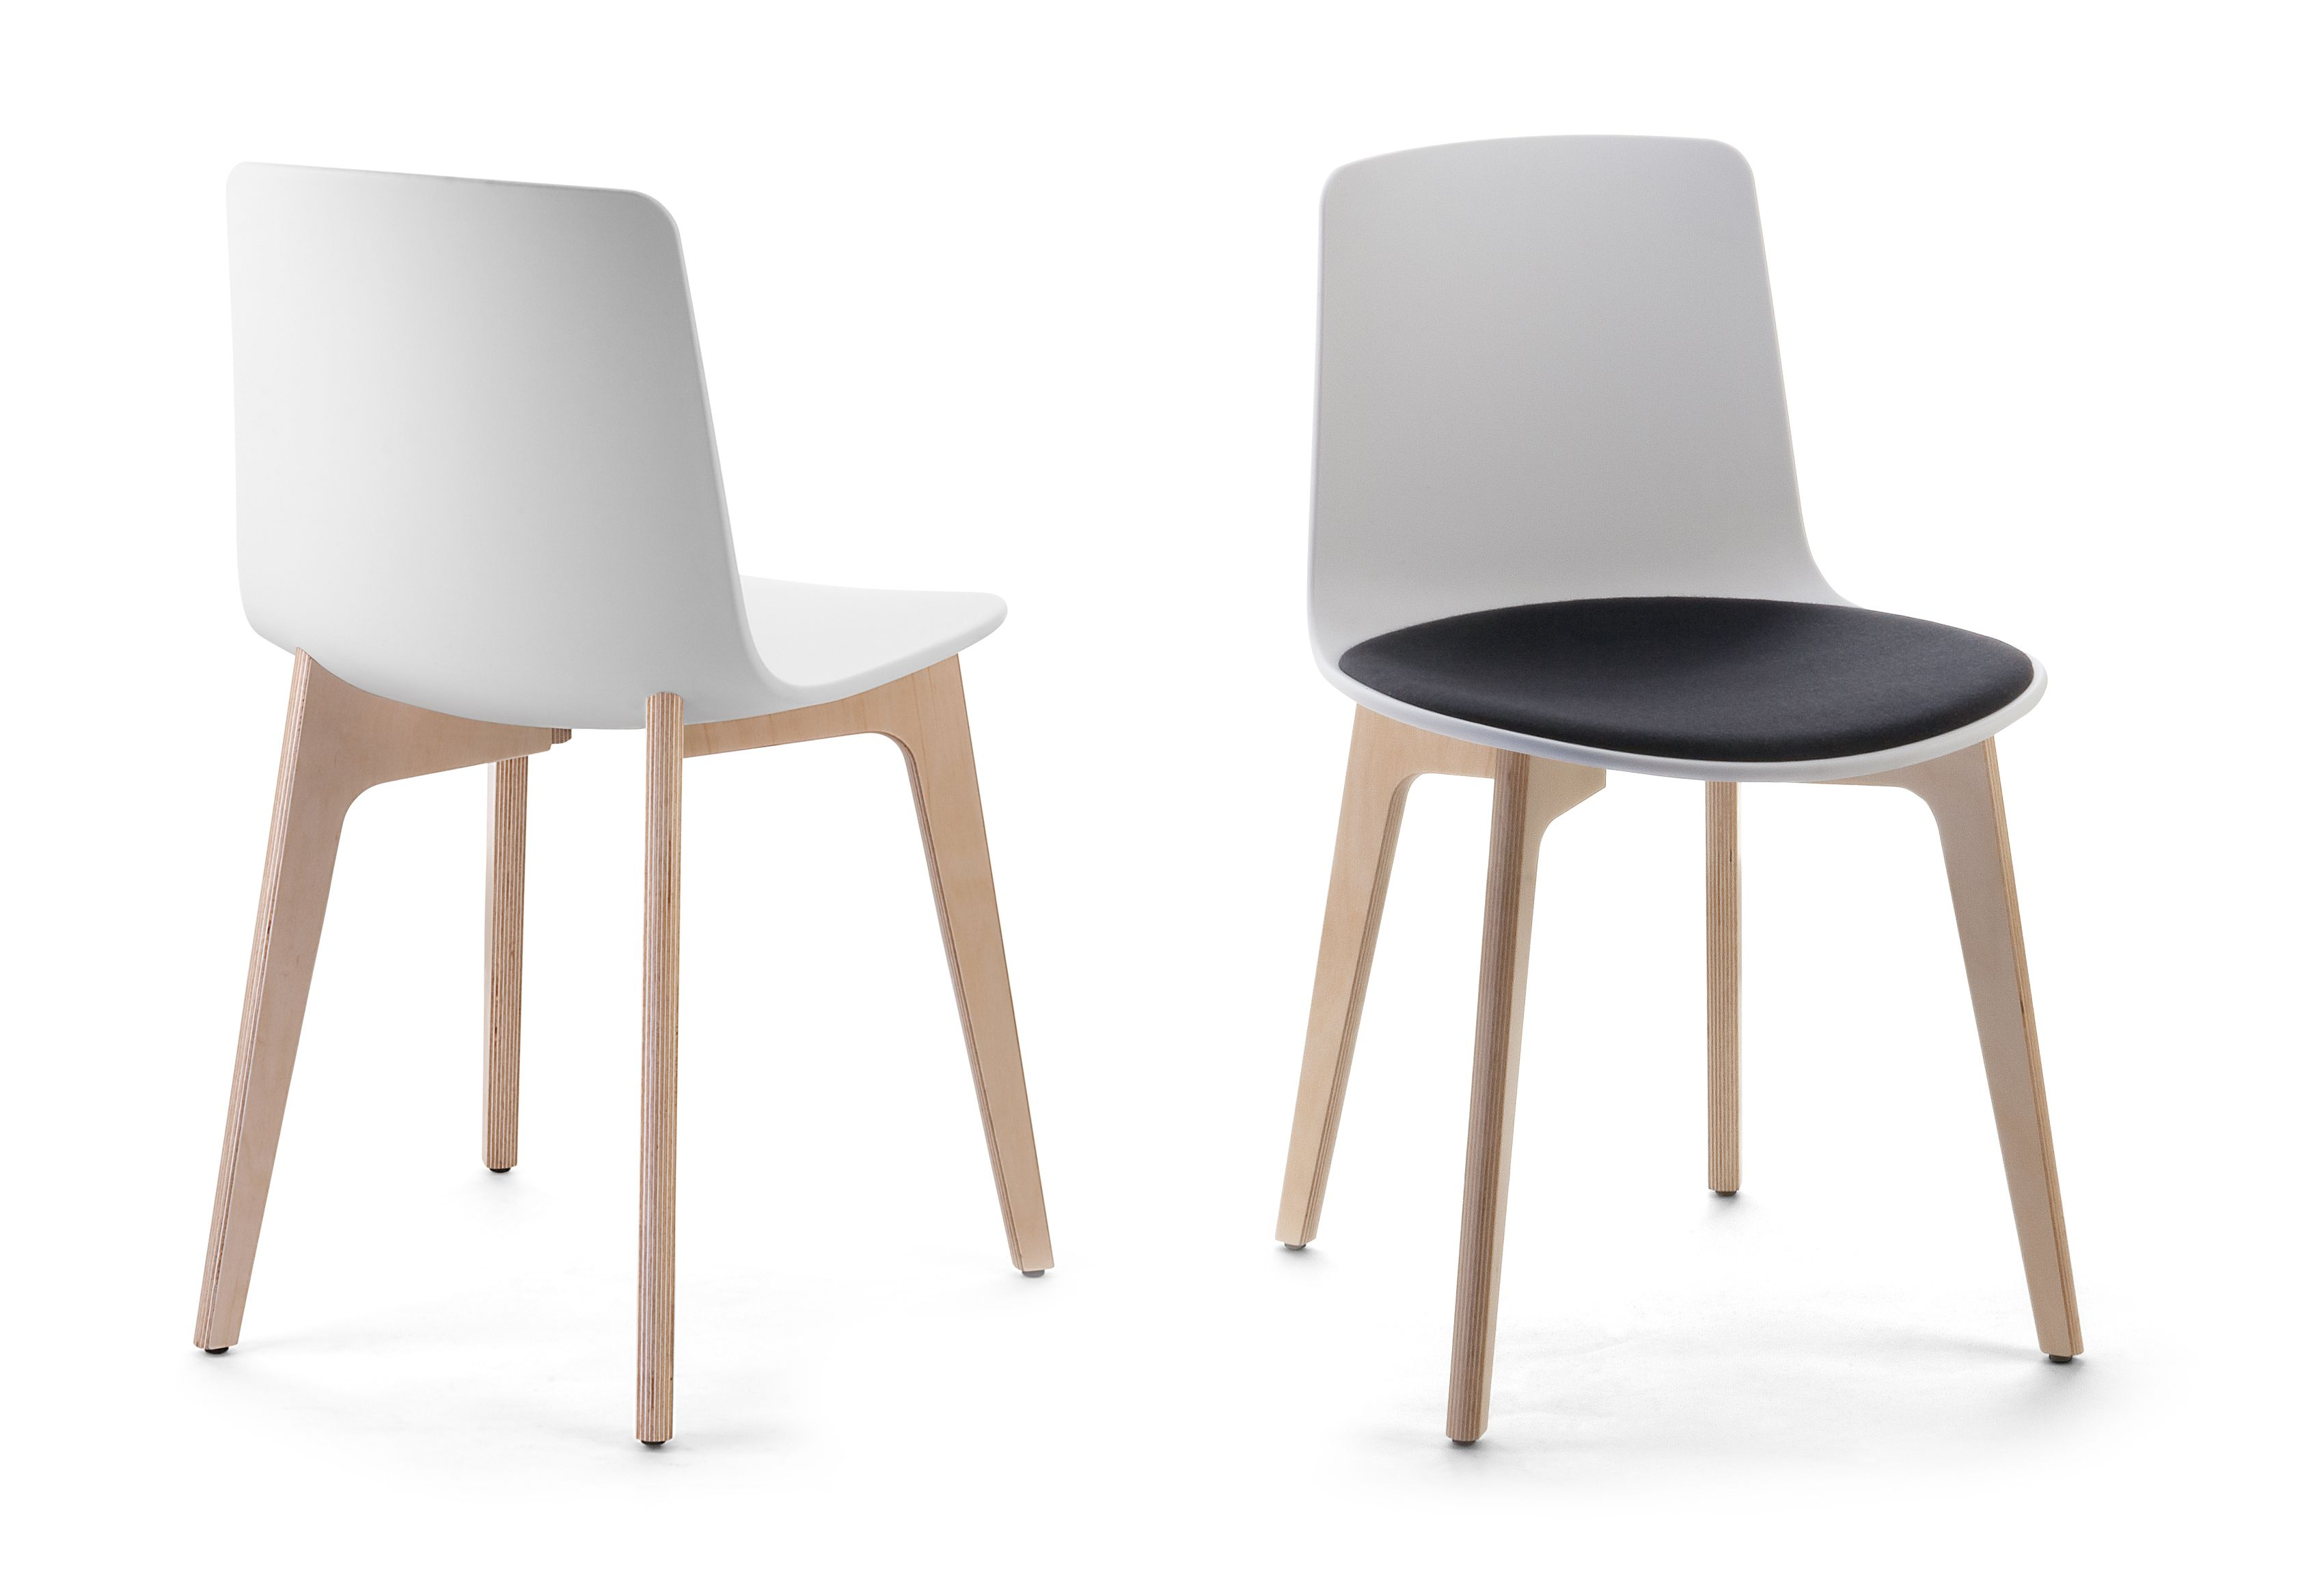 Lottus chair in wood structure and polypropylene frame by Enea